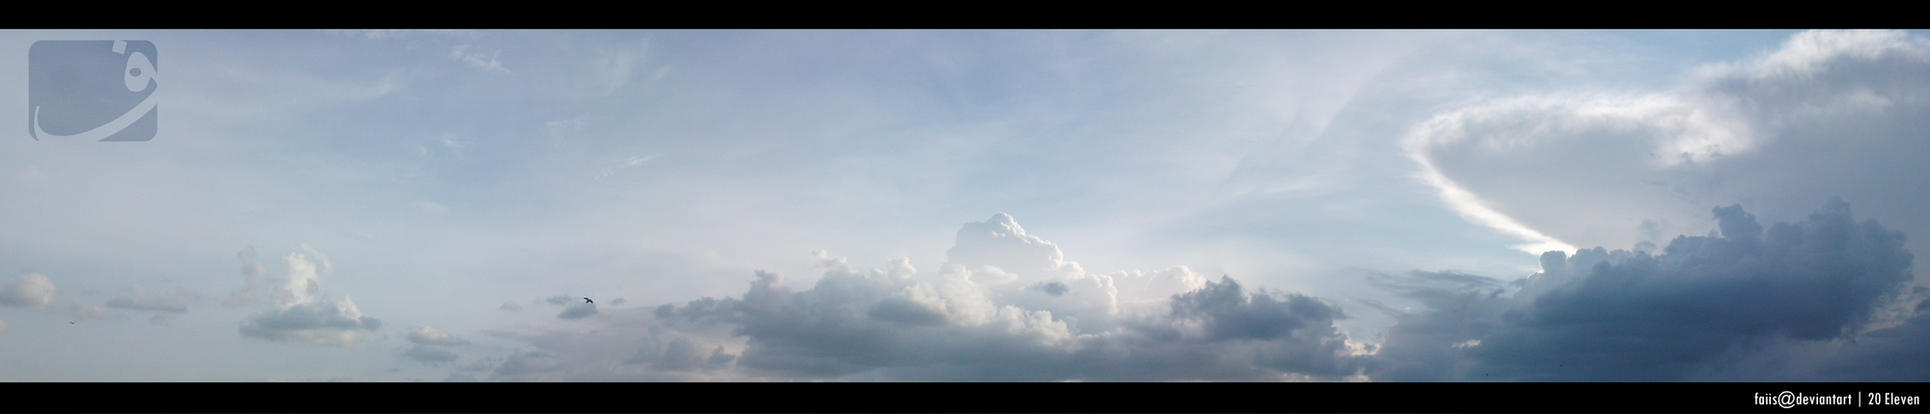 clouds by faiis